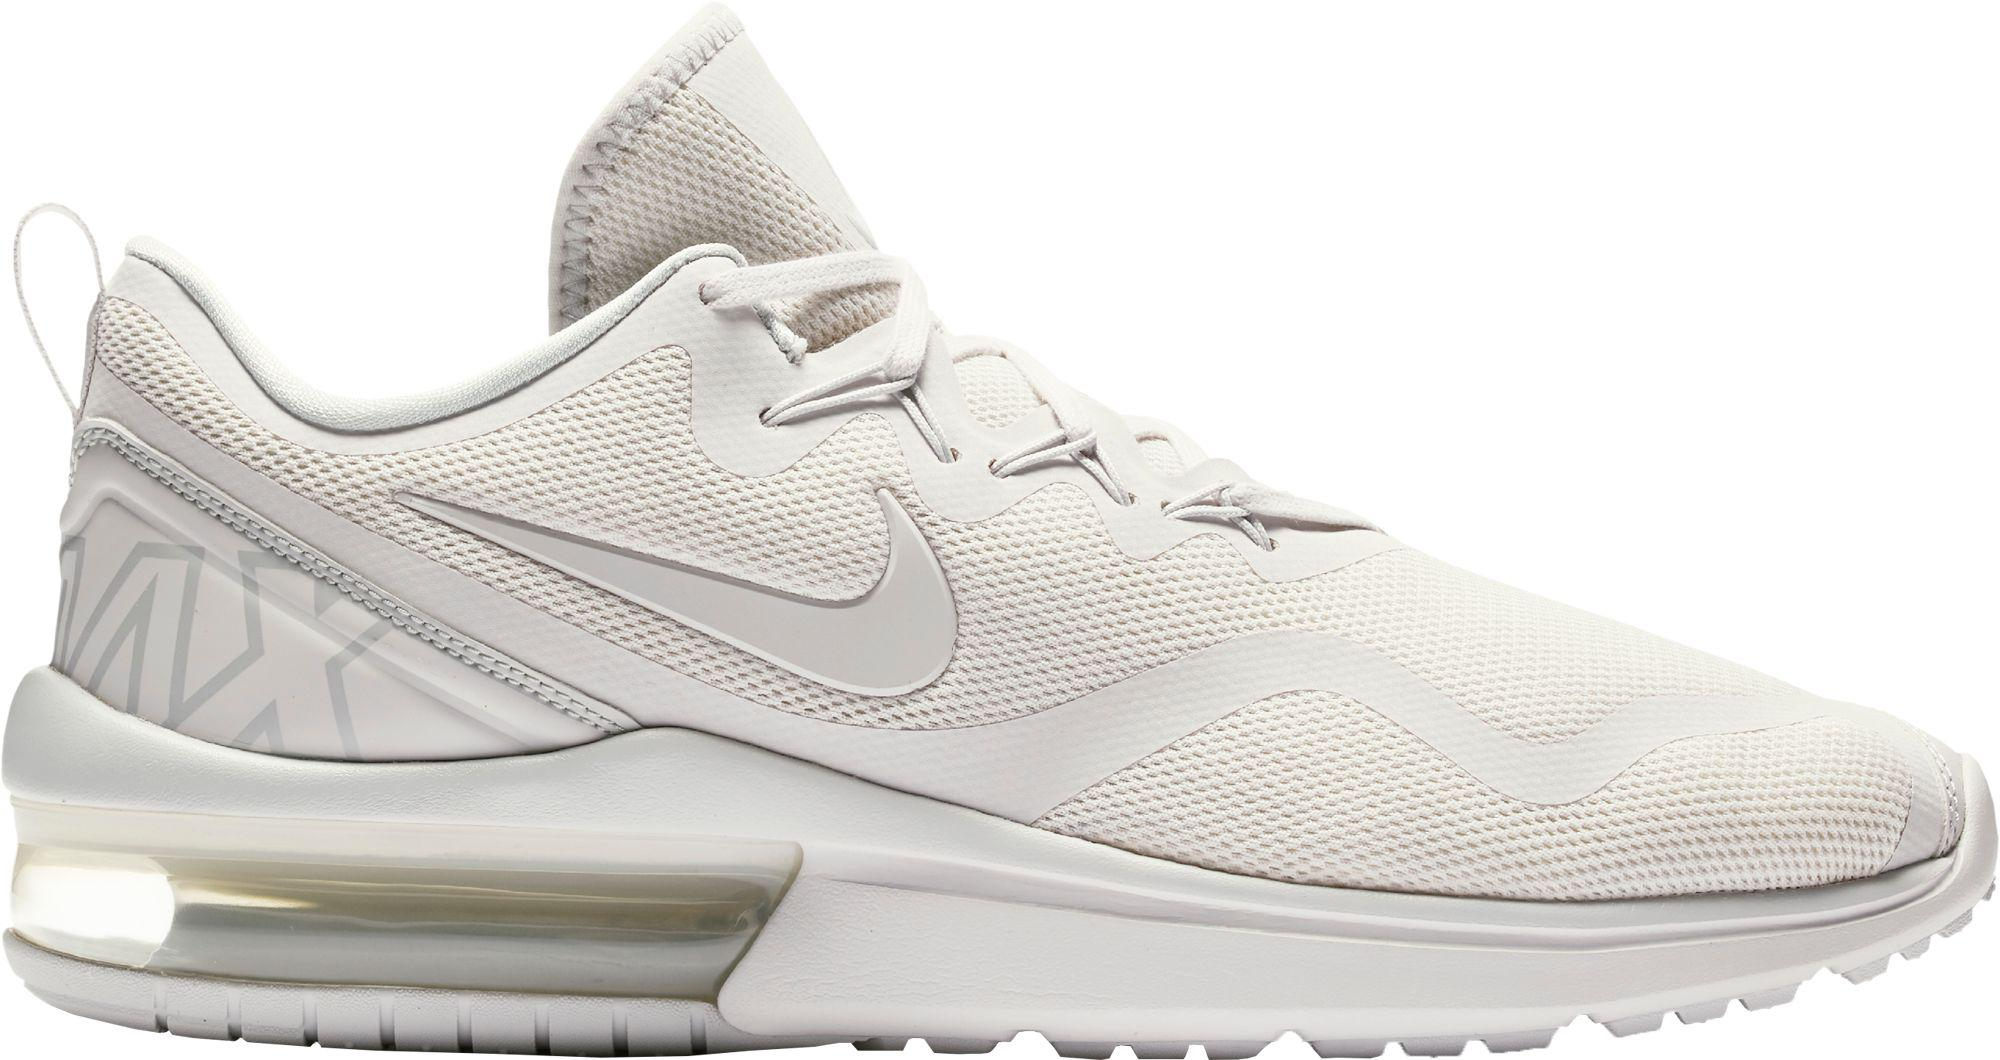 9457ae6f2410 Lyst - Nike Air Max Fury Running Shoes in White for Men